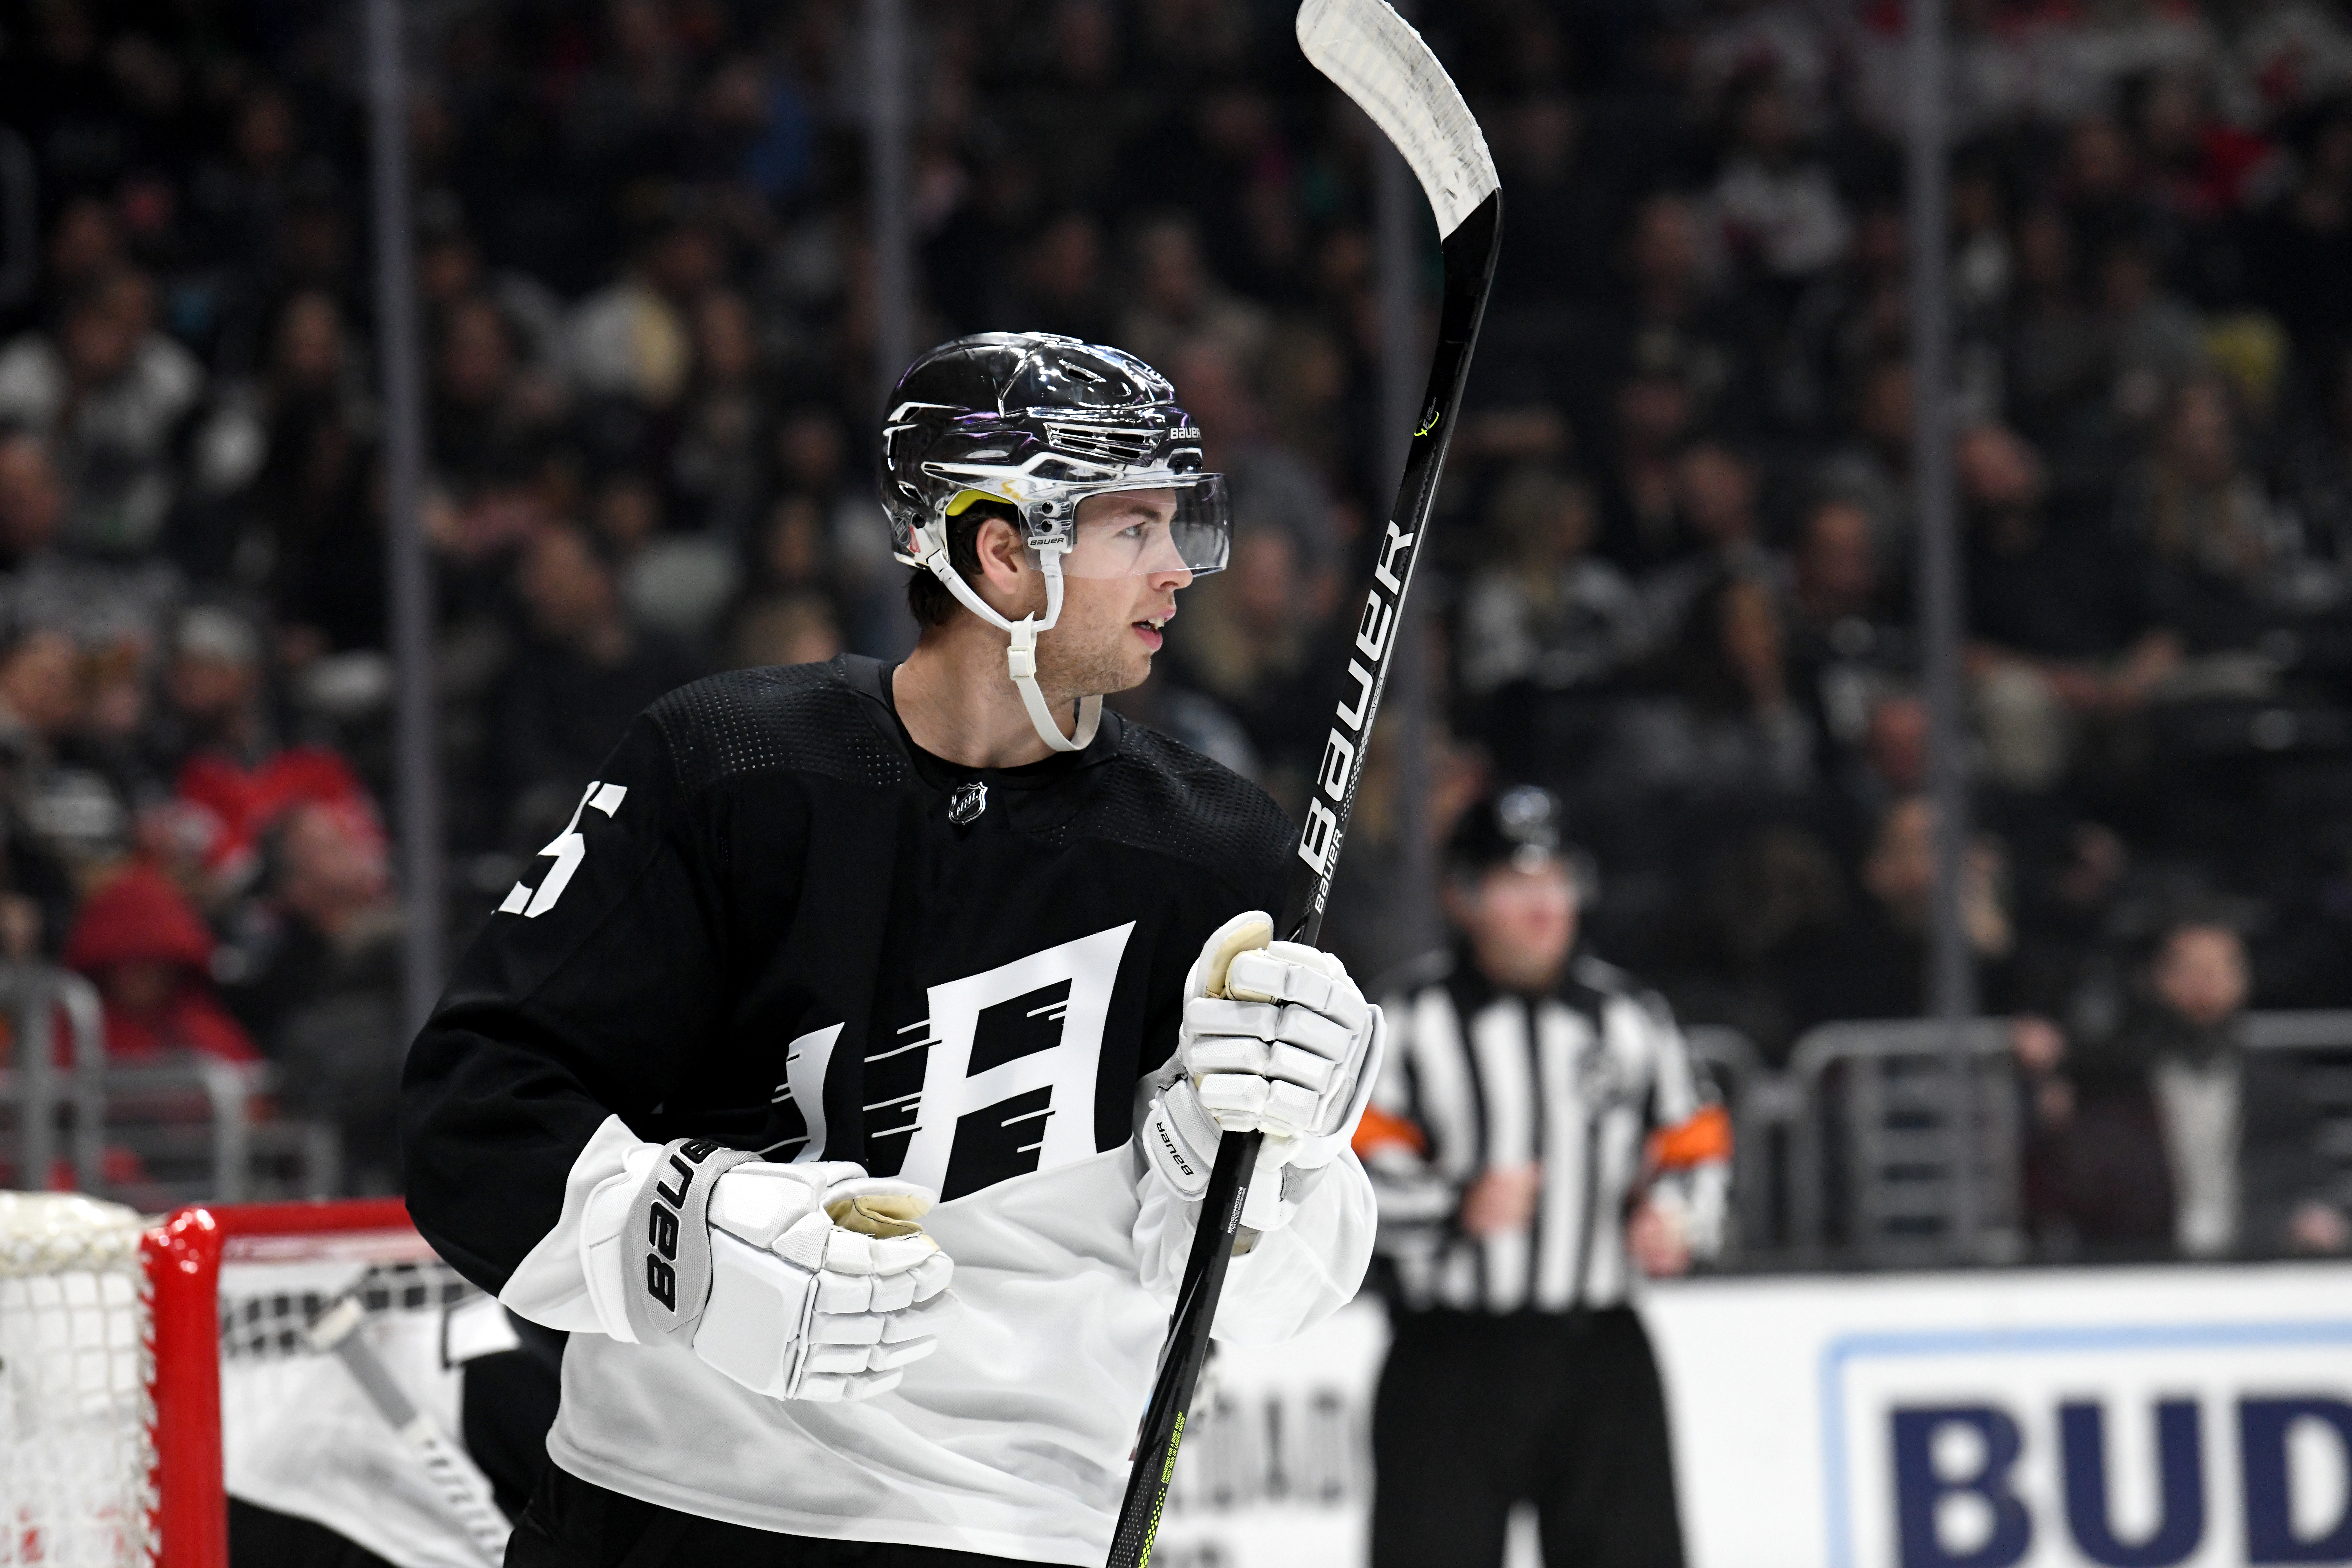 Los Angeles Kings Defenceman Ben Hutton (15) during a stoppage in play on February 29, 2020, at the Staples Center in Los Angeles, CA.